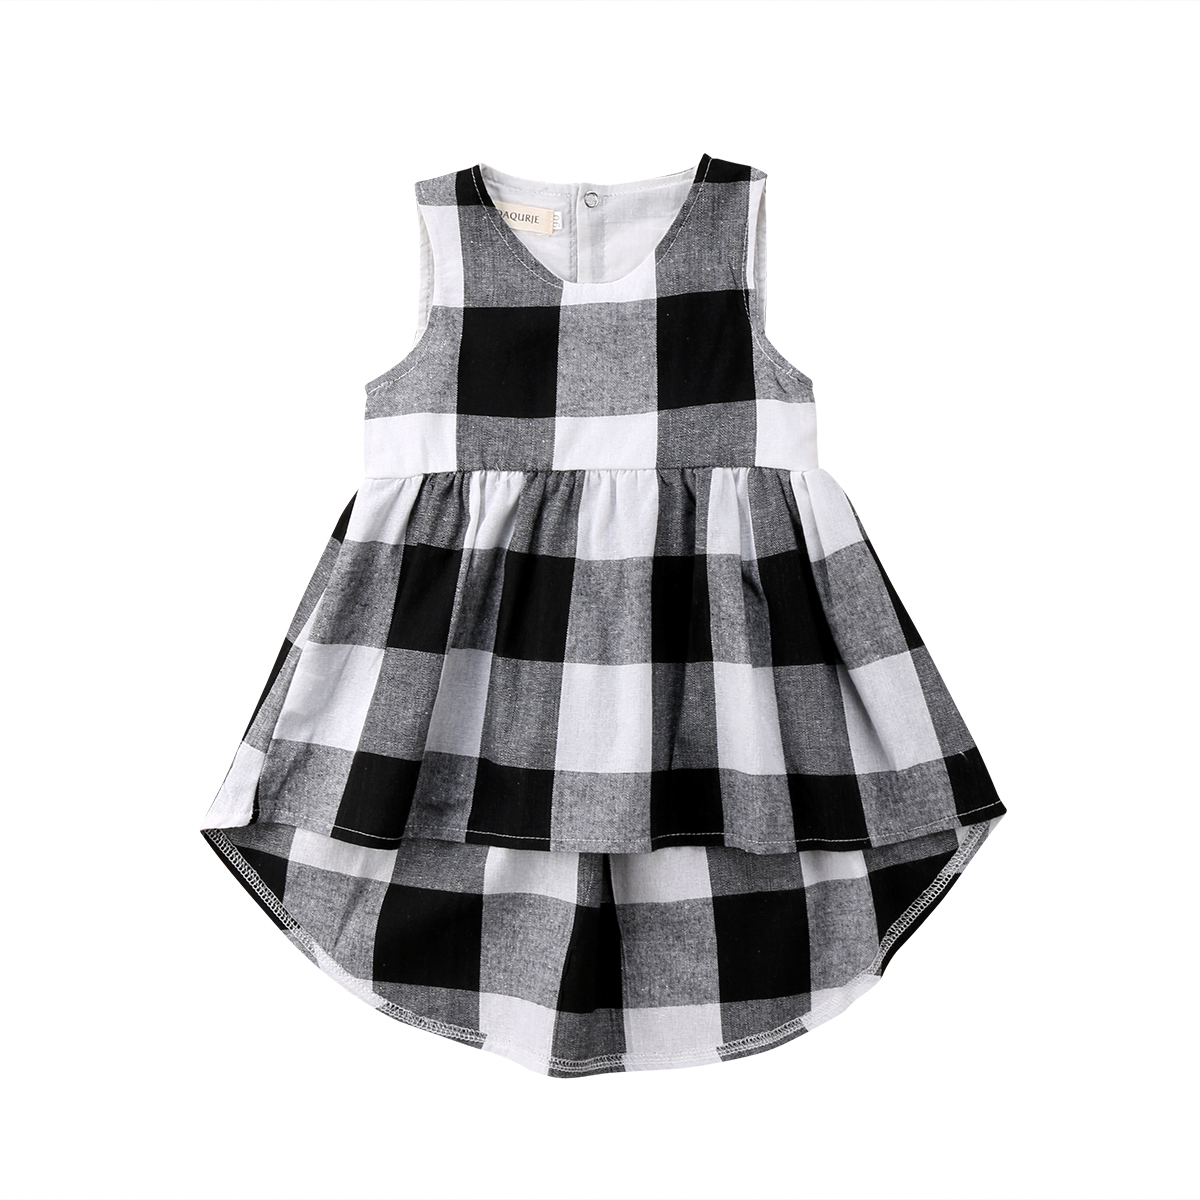 Kids Baby Girls Princess Plaid Sleeveless Dress Clothing Sundress Summer Casual Clothes Dresses Girl 2-7T summer baby girl printed pattern straps dresses toddler girls baby clothing sleeveless baby dress kids casual clothes yp